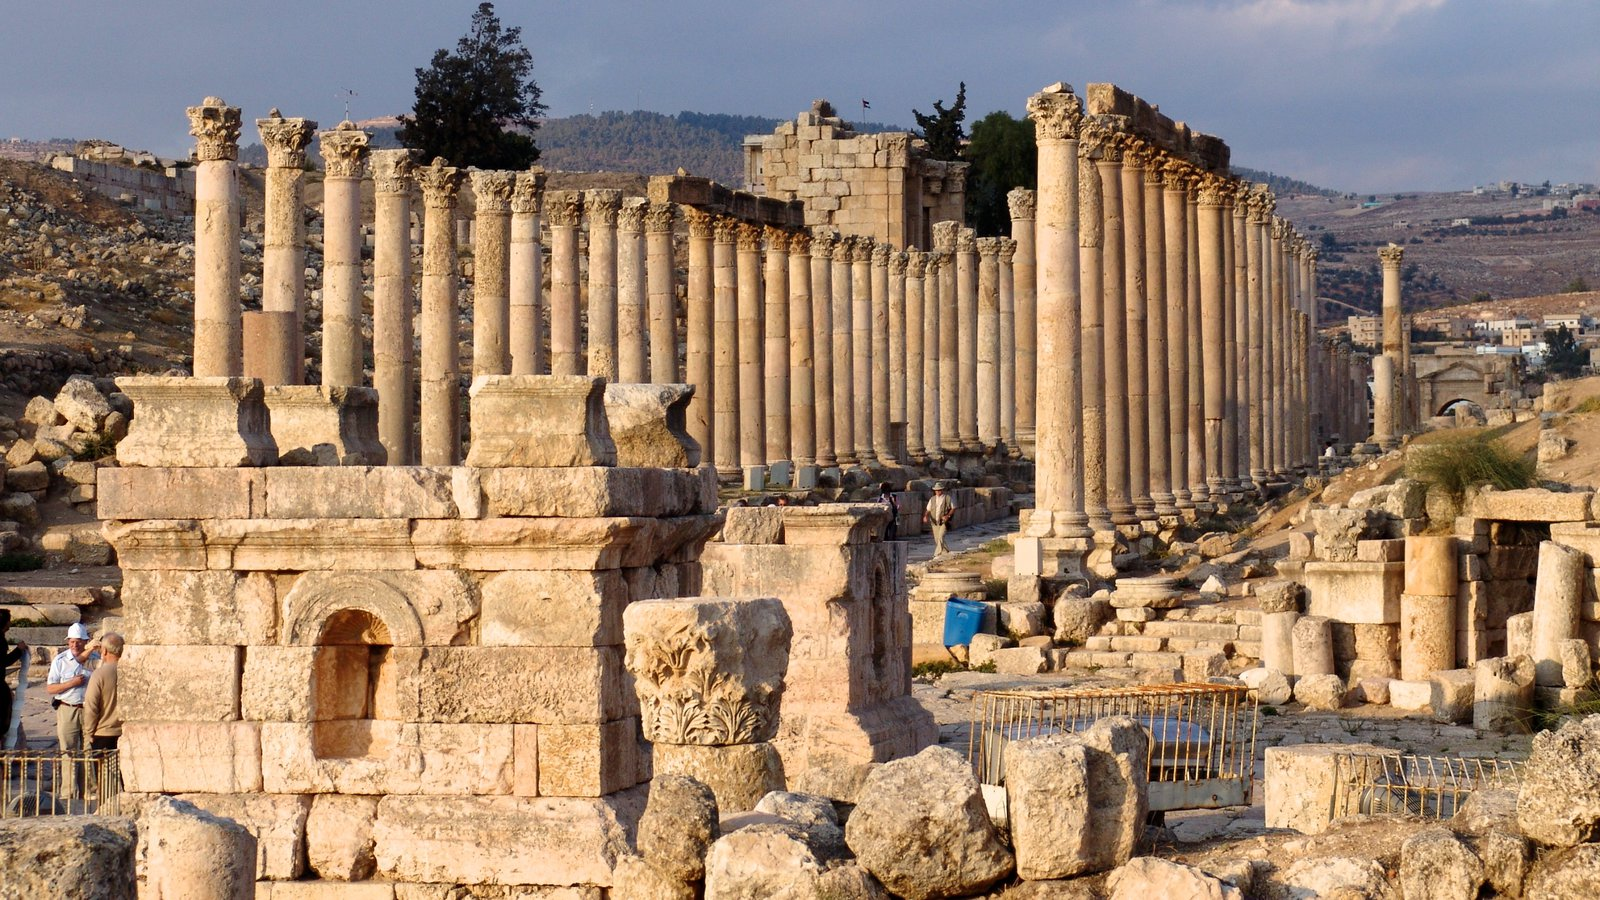 Jerash which includes heritage architecture, a ruin and heritage elements